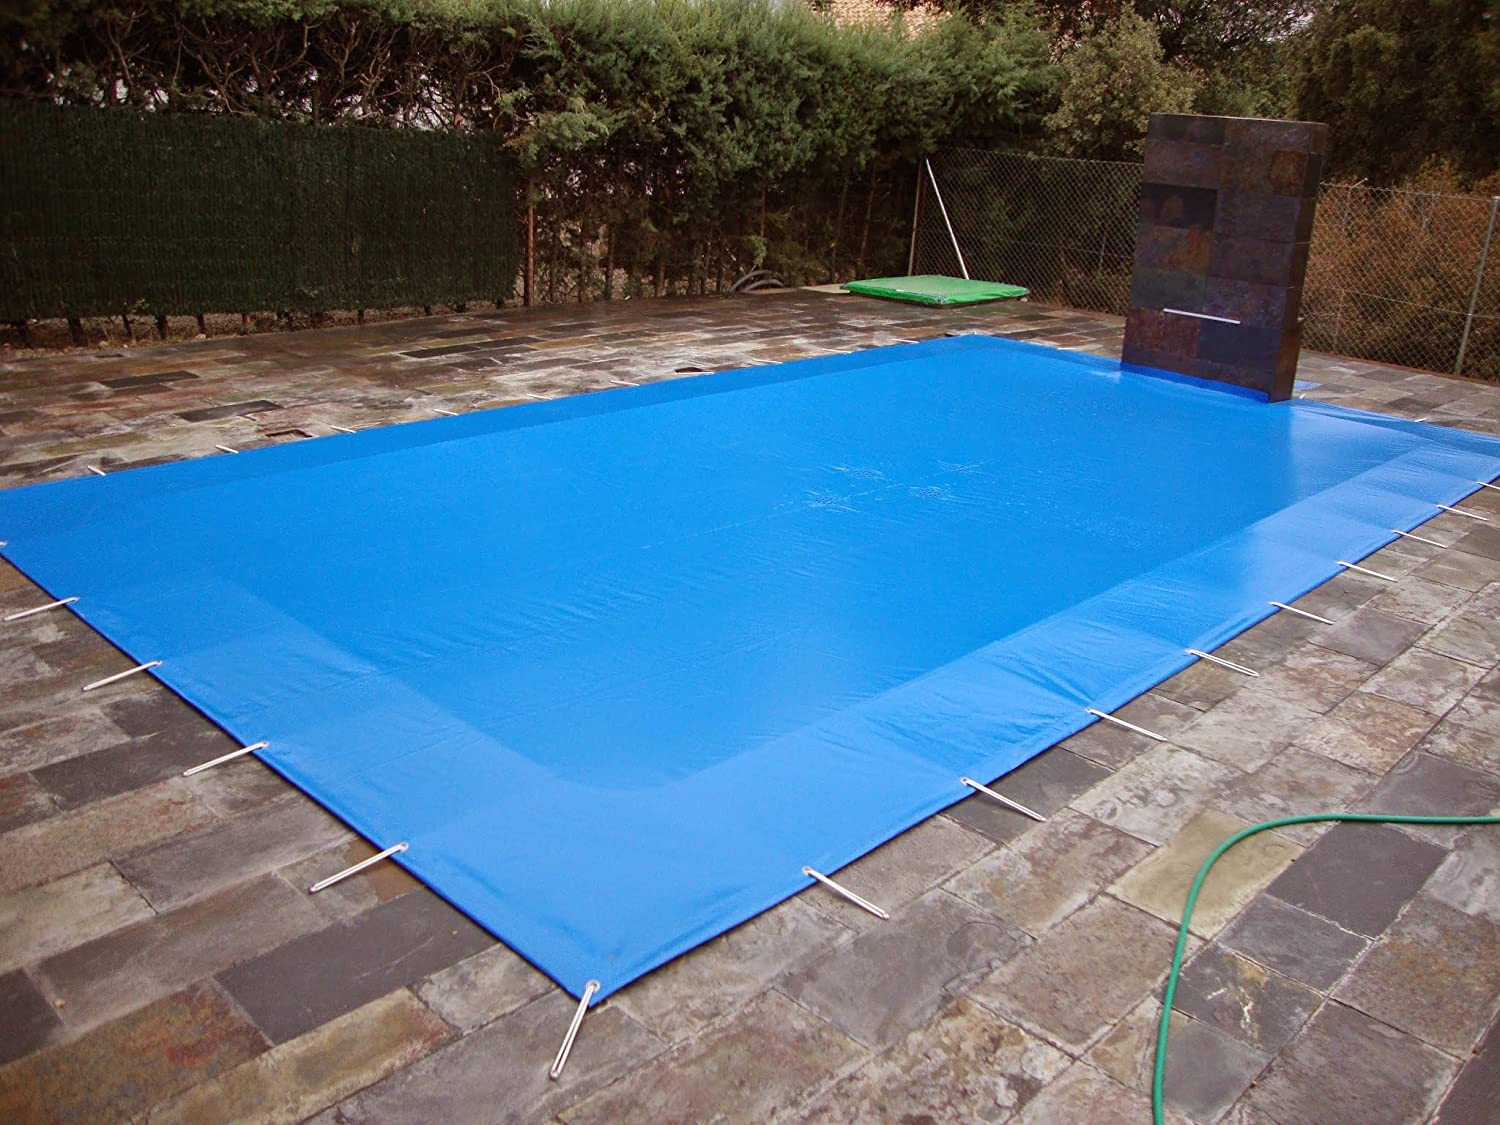 INTERNATIONAL COVER POOL Cubierta de Invierno para Piscina 3x5 Metros (3,30x5,30 Metros)